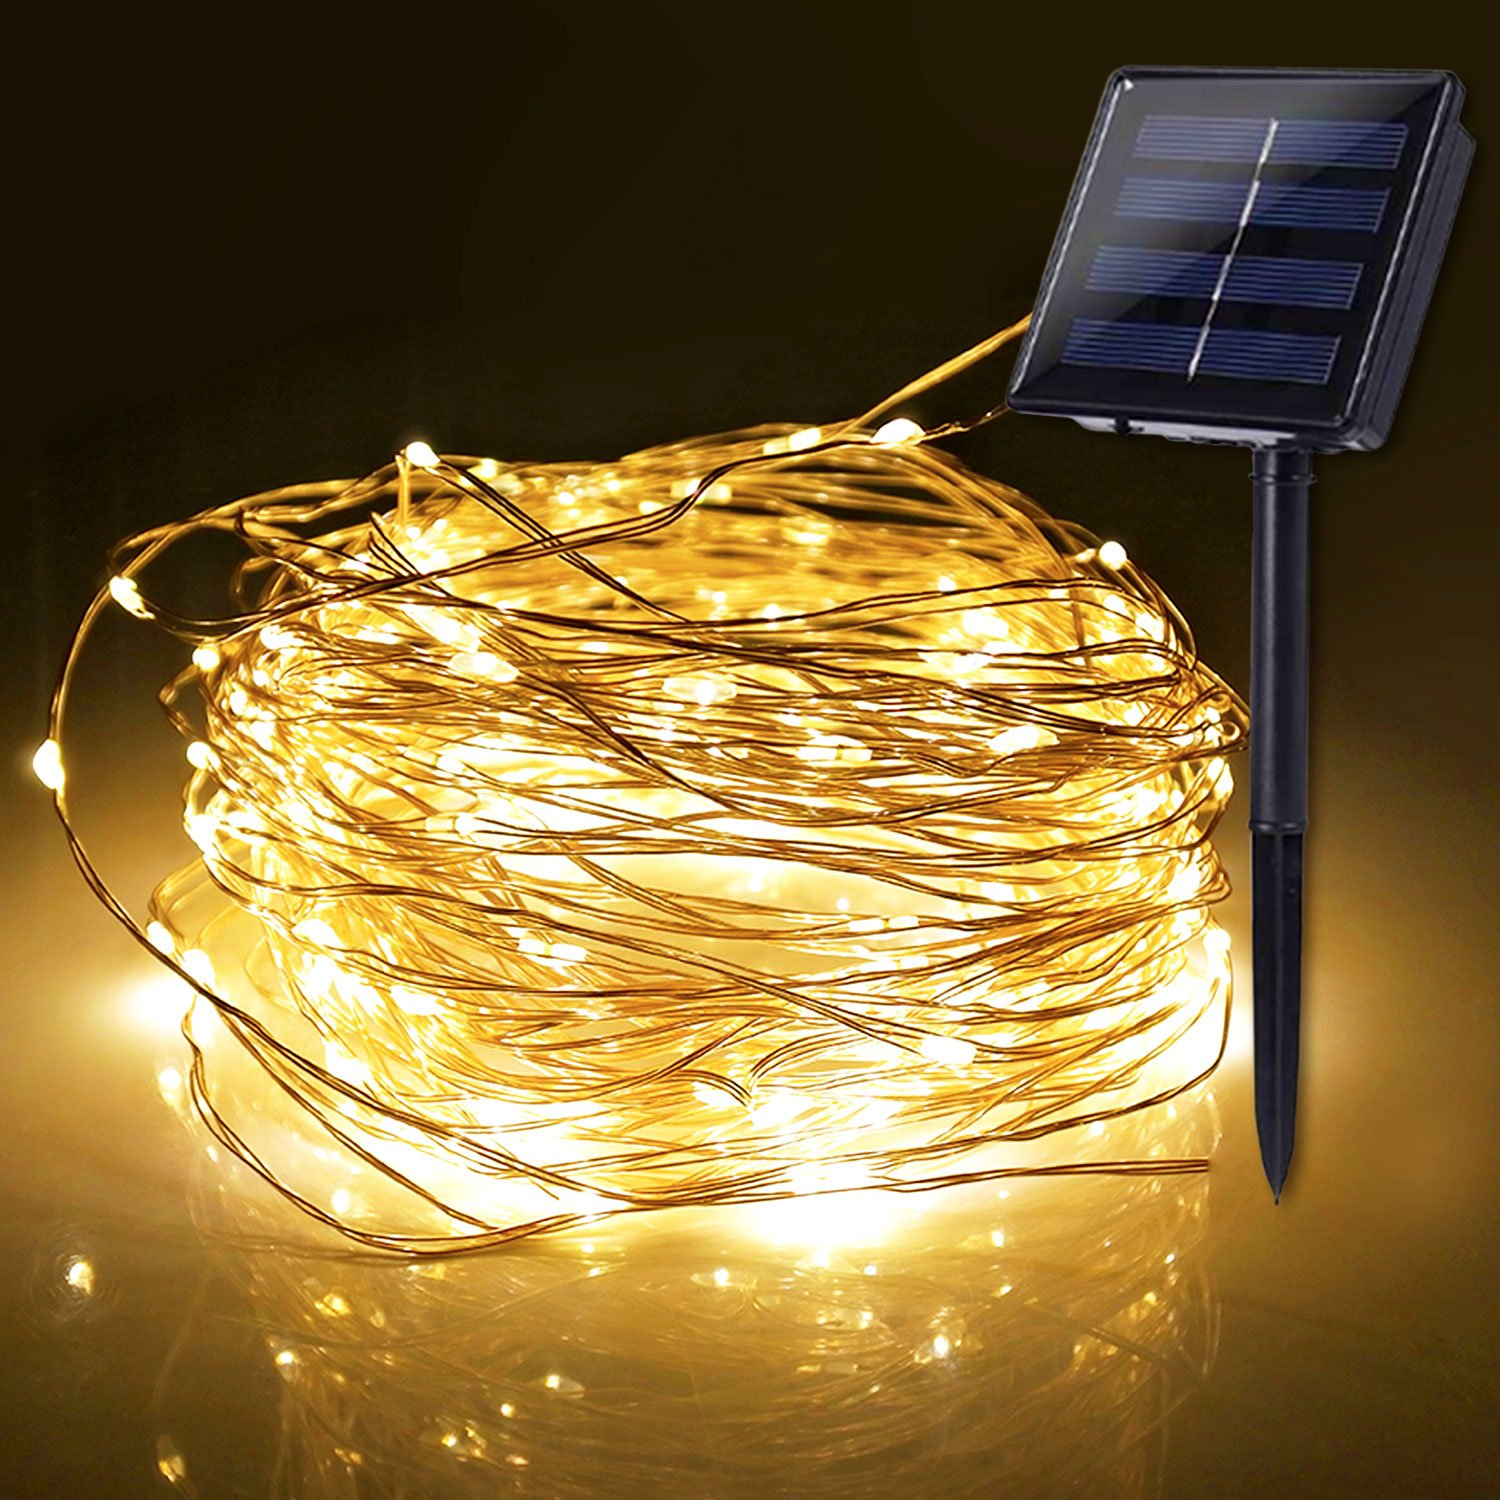 ETHINK 100 LED 32.8ft Indoor, Outdoor 8 Modes Solar Powered Waterproof Fairy String Copper Wire Lights for Christmas, Bedroom, Party, Patio, Wedding, Warm White (100LED)